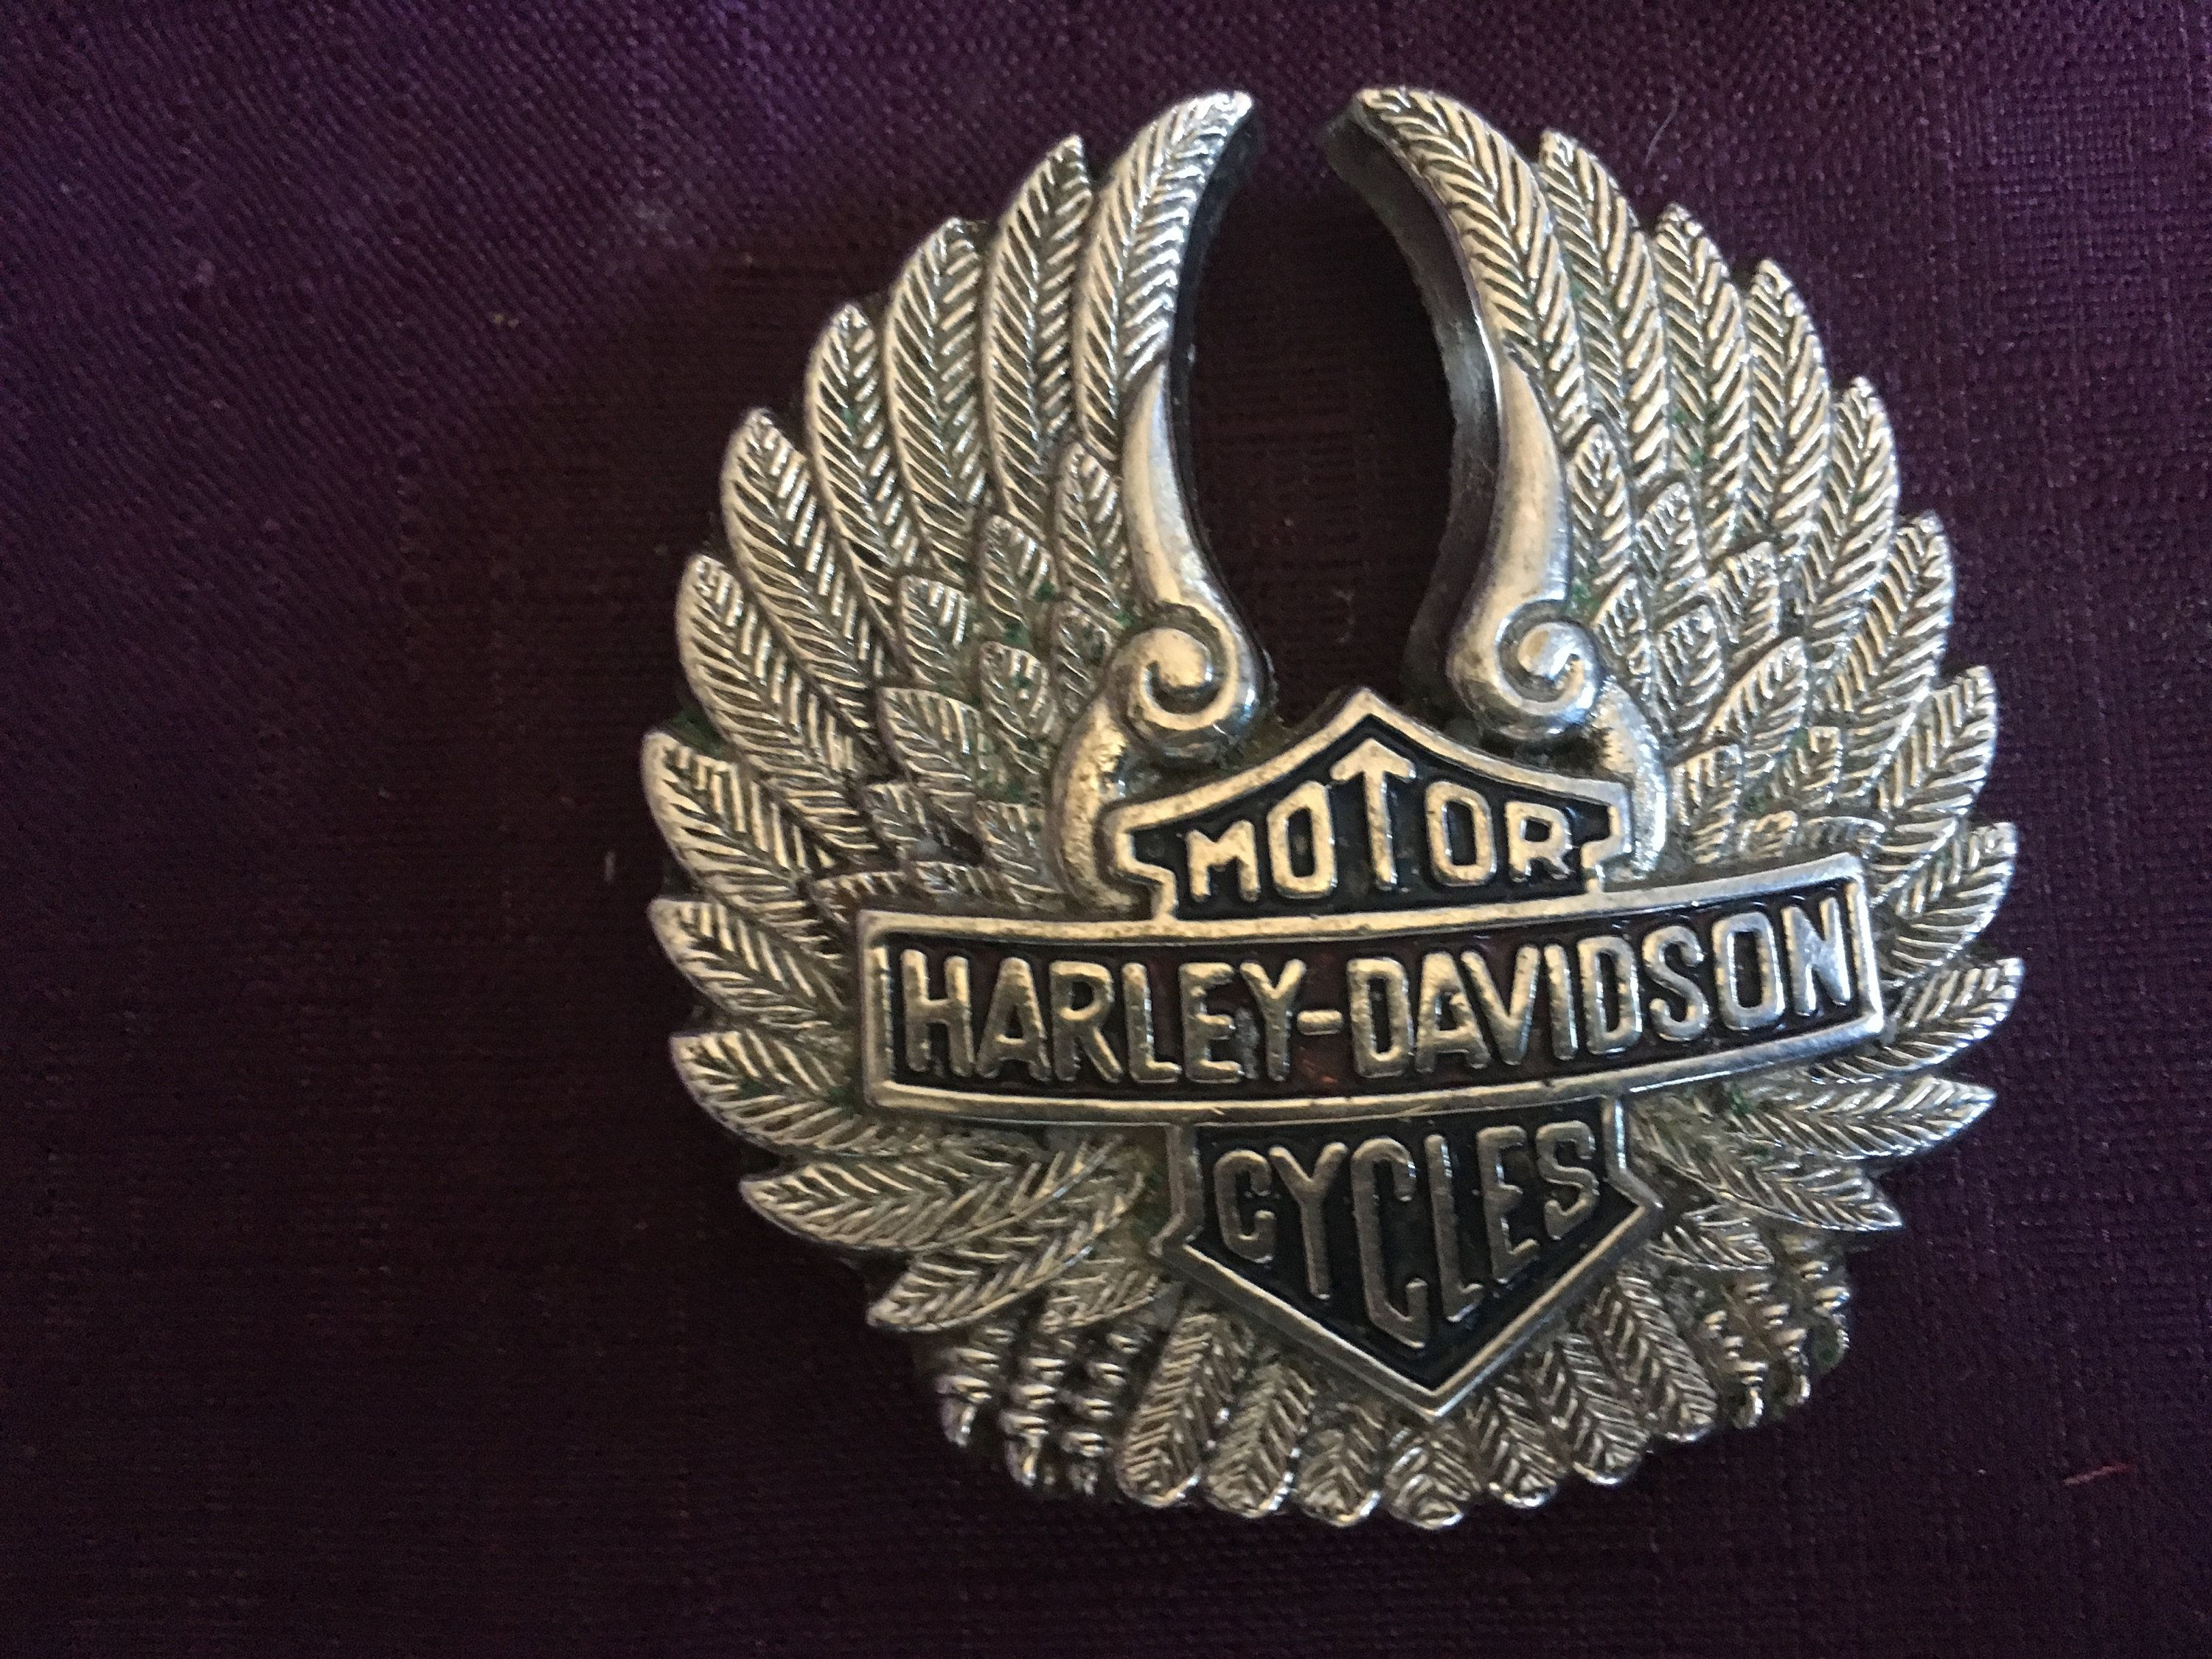 Collectible 1983 harley davidson silver buckle wings motor